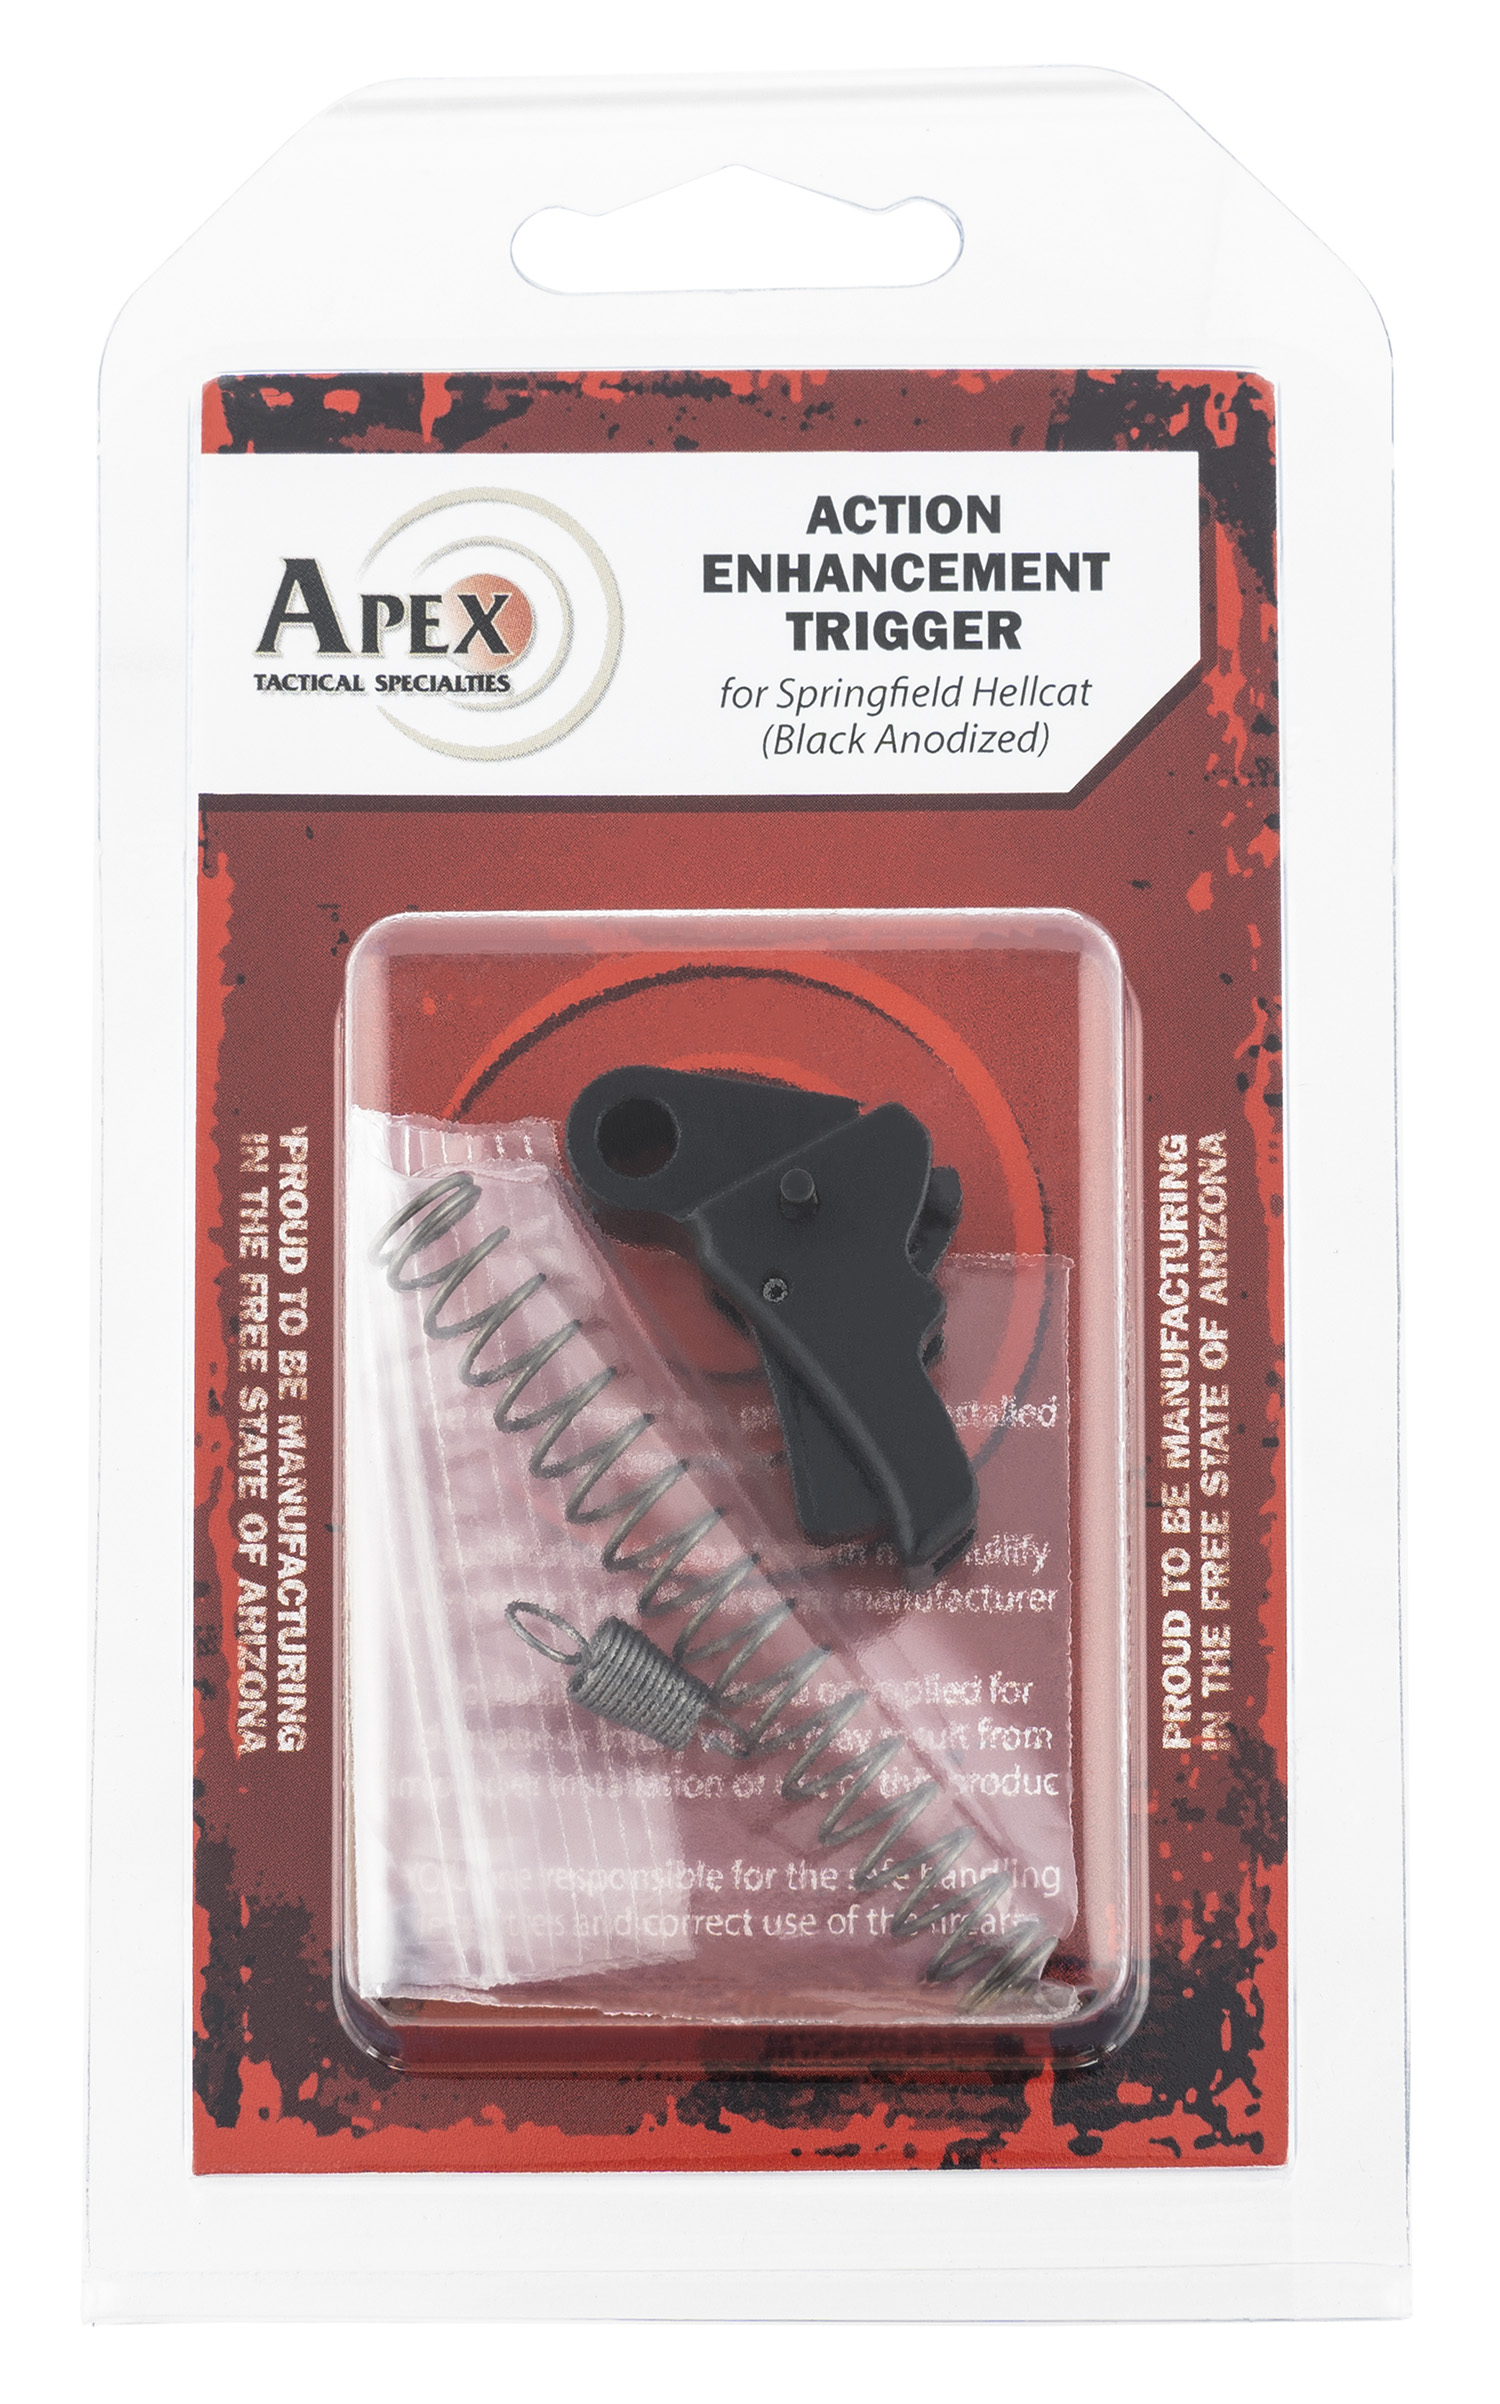 APEX TACTICAL SPECIALTIES 115112 Action Enhancement  Trigger Springfield Hellcat Black Curved 5-5.50 lbs